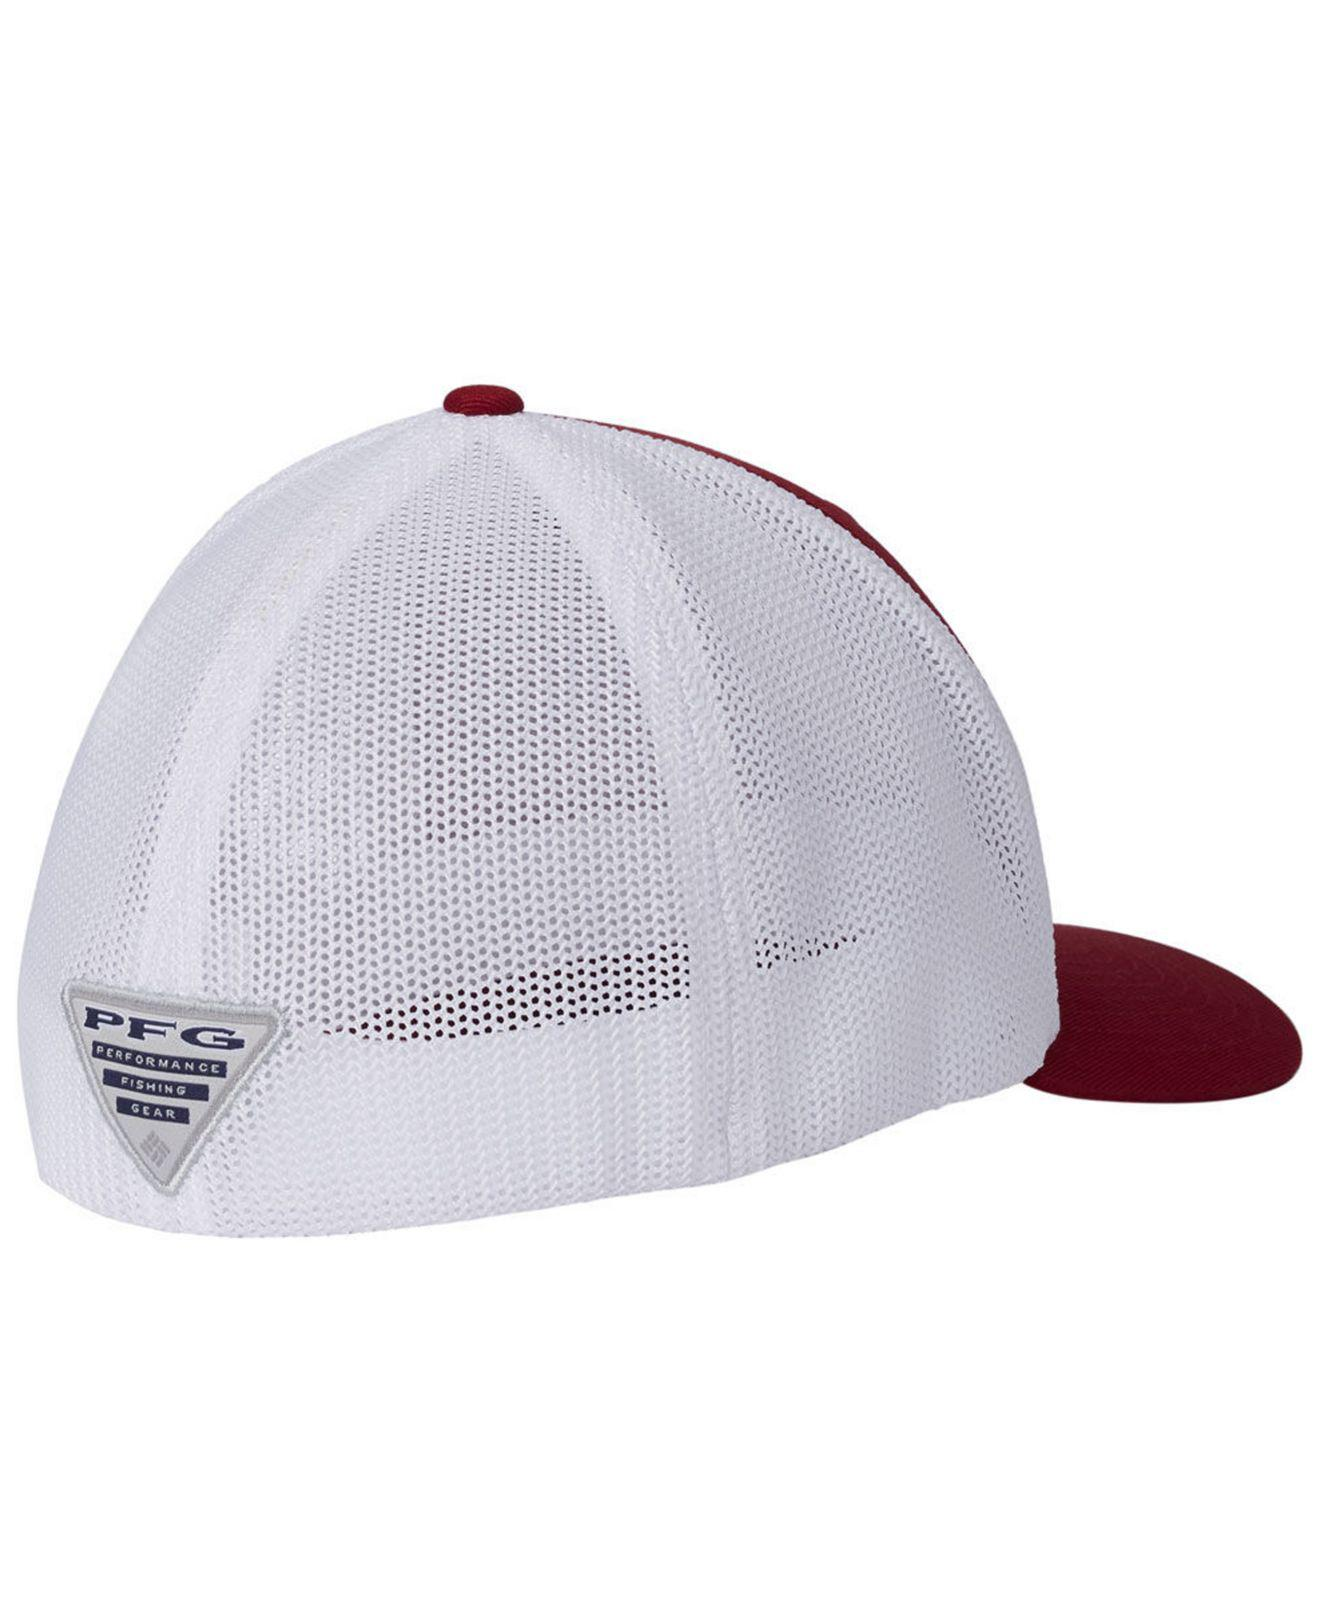 Lyst - Columbia Alabama Crimson Tide Pfg Stretch Fitted Cap in Red for Men 9f2aa99db0a7